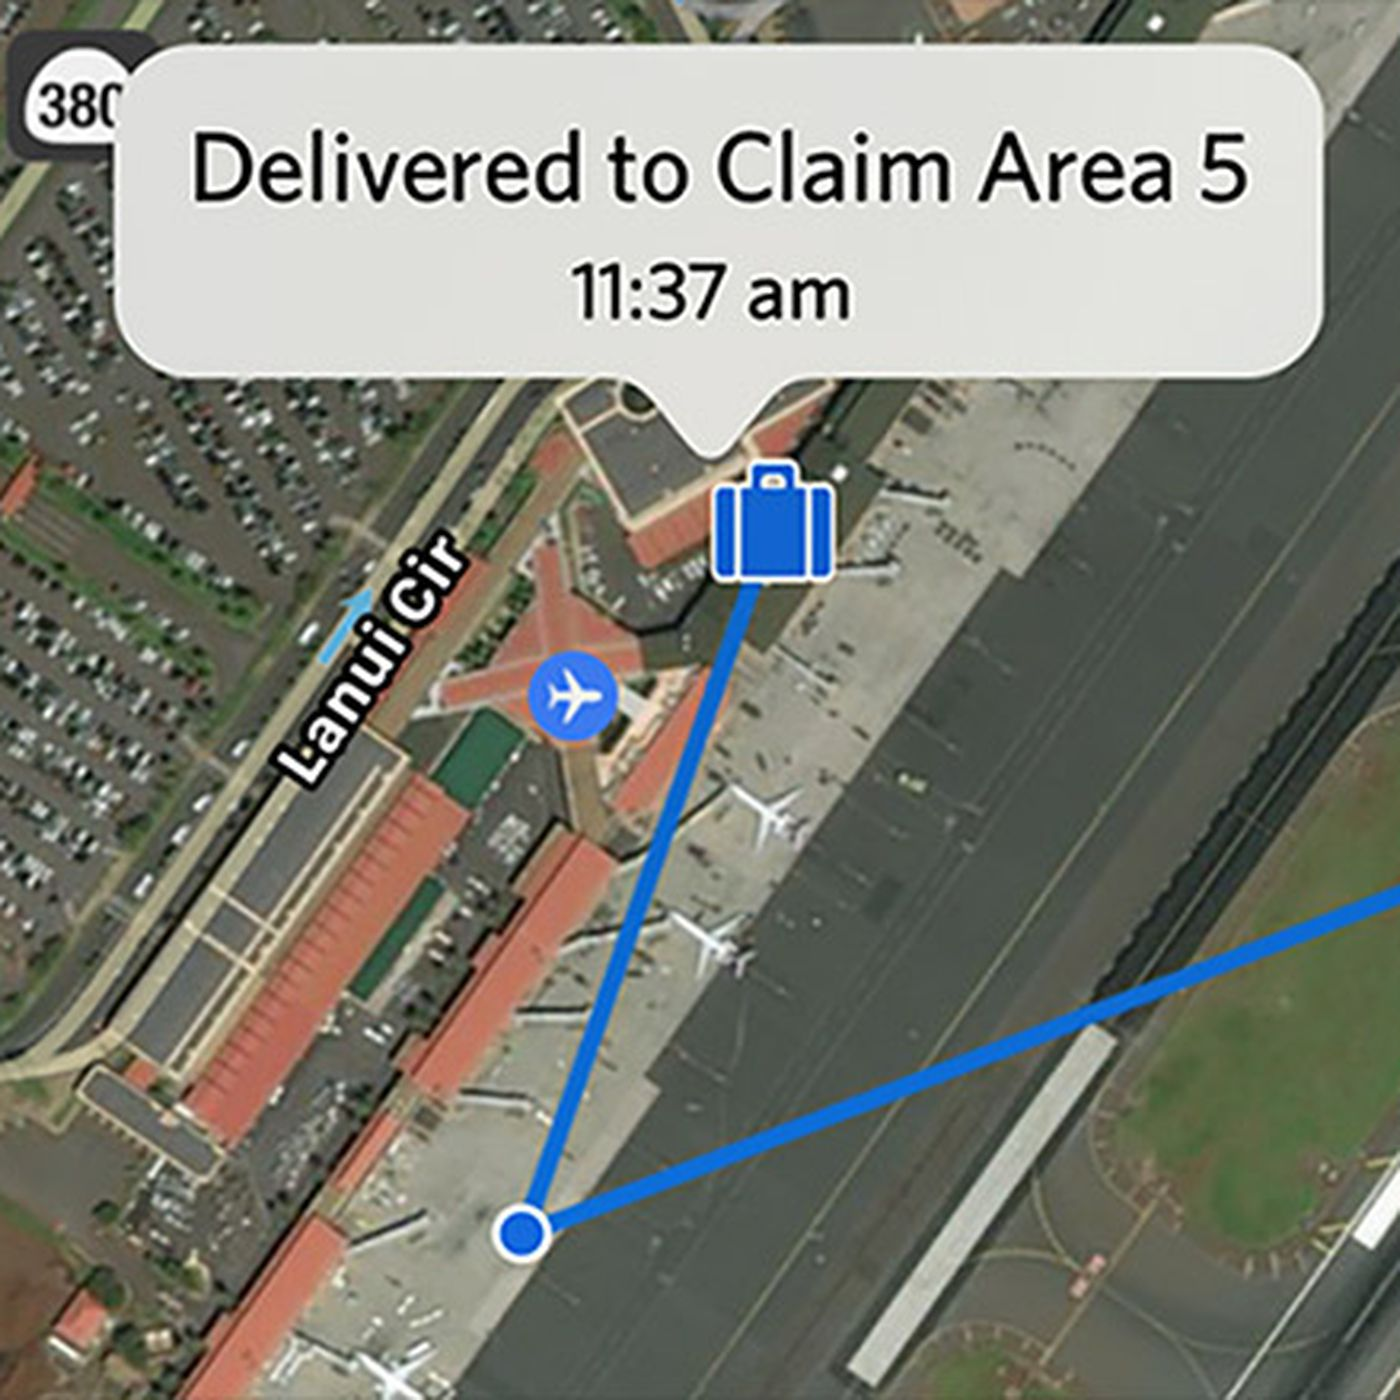 Delta's new app lets you track your bag from airplane to